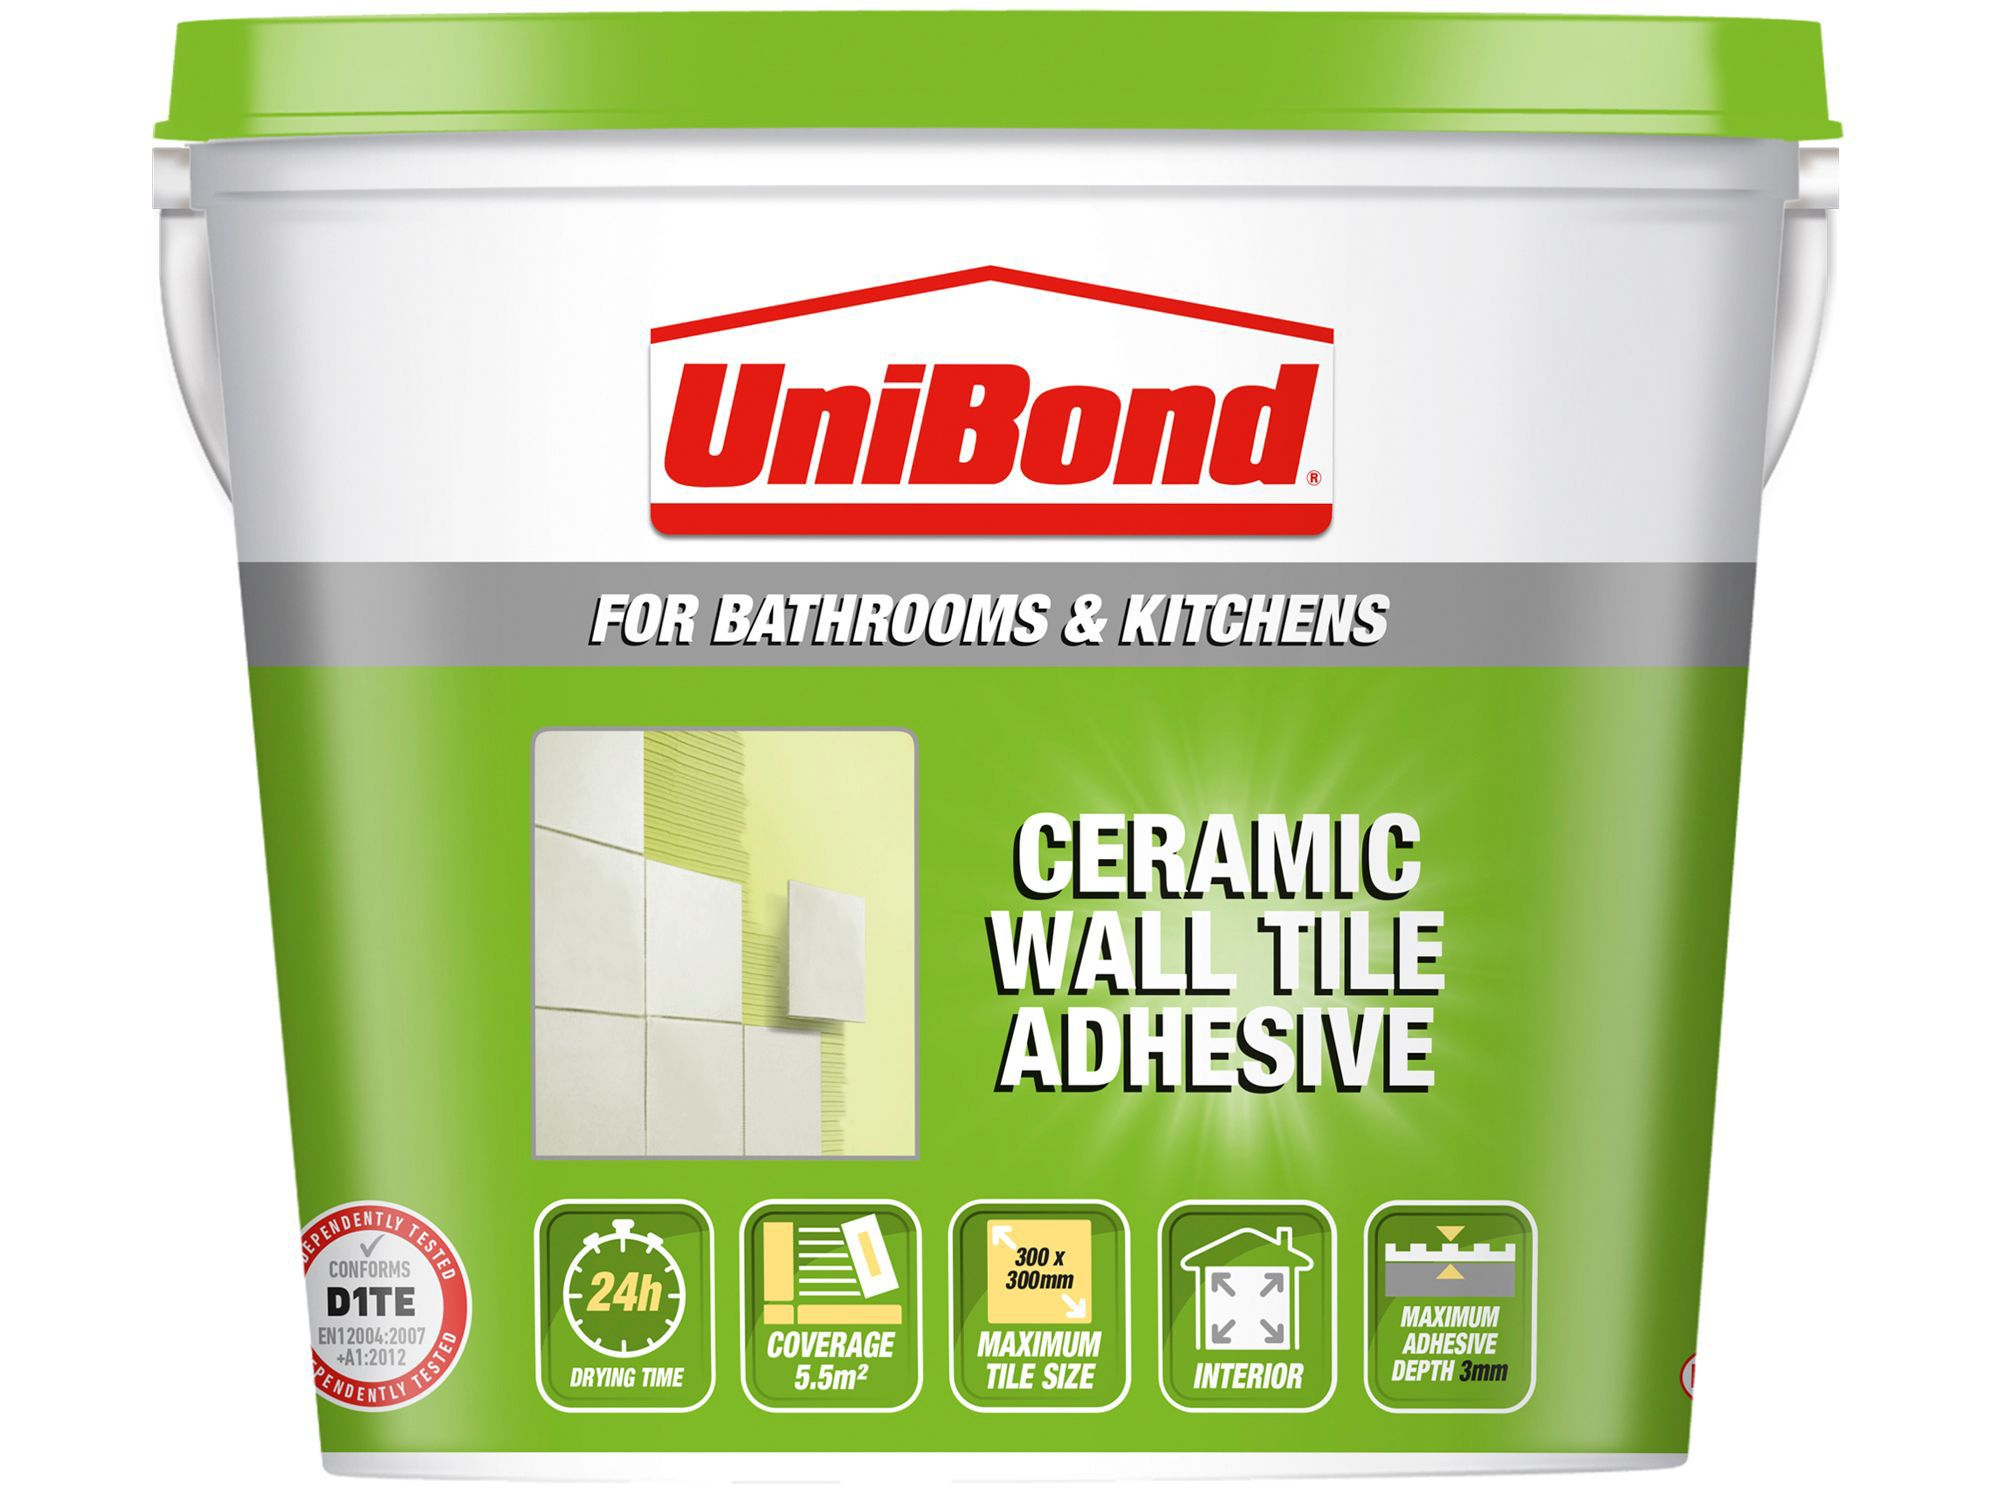 Unibond ready to use wall tile adhesive beige 74kg departments unibond ready to use wall tile adhesive beige 74kg departments diy at bq dailygadgetfo Gallery